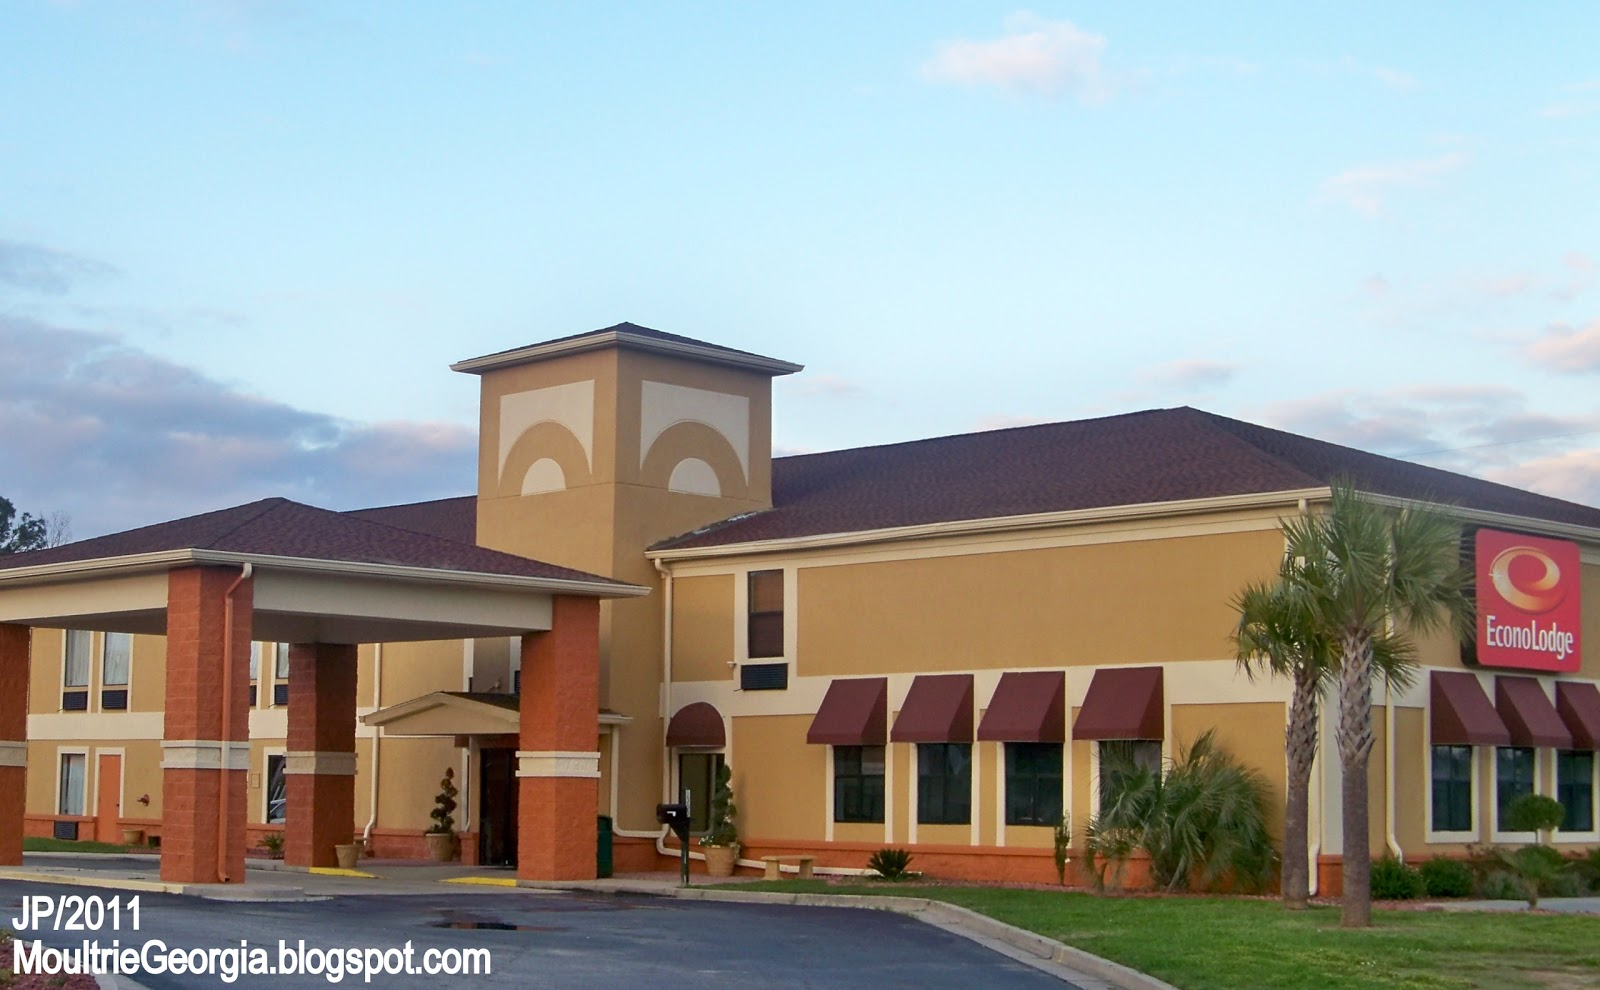 Econolodge Hotel Moultrie Georgia Veterans Parkway Lodging Econo Lodge Colquitt County Ga